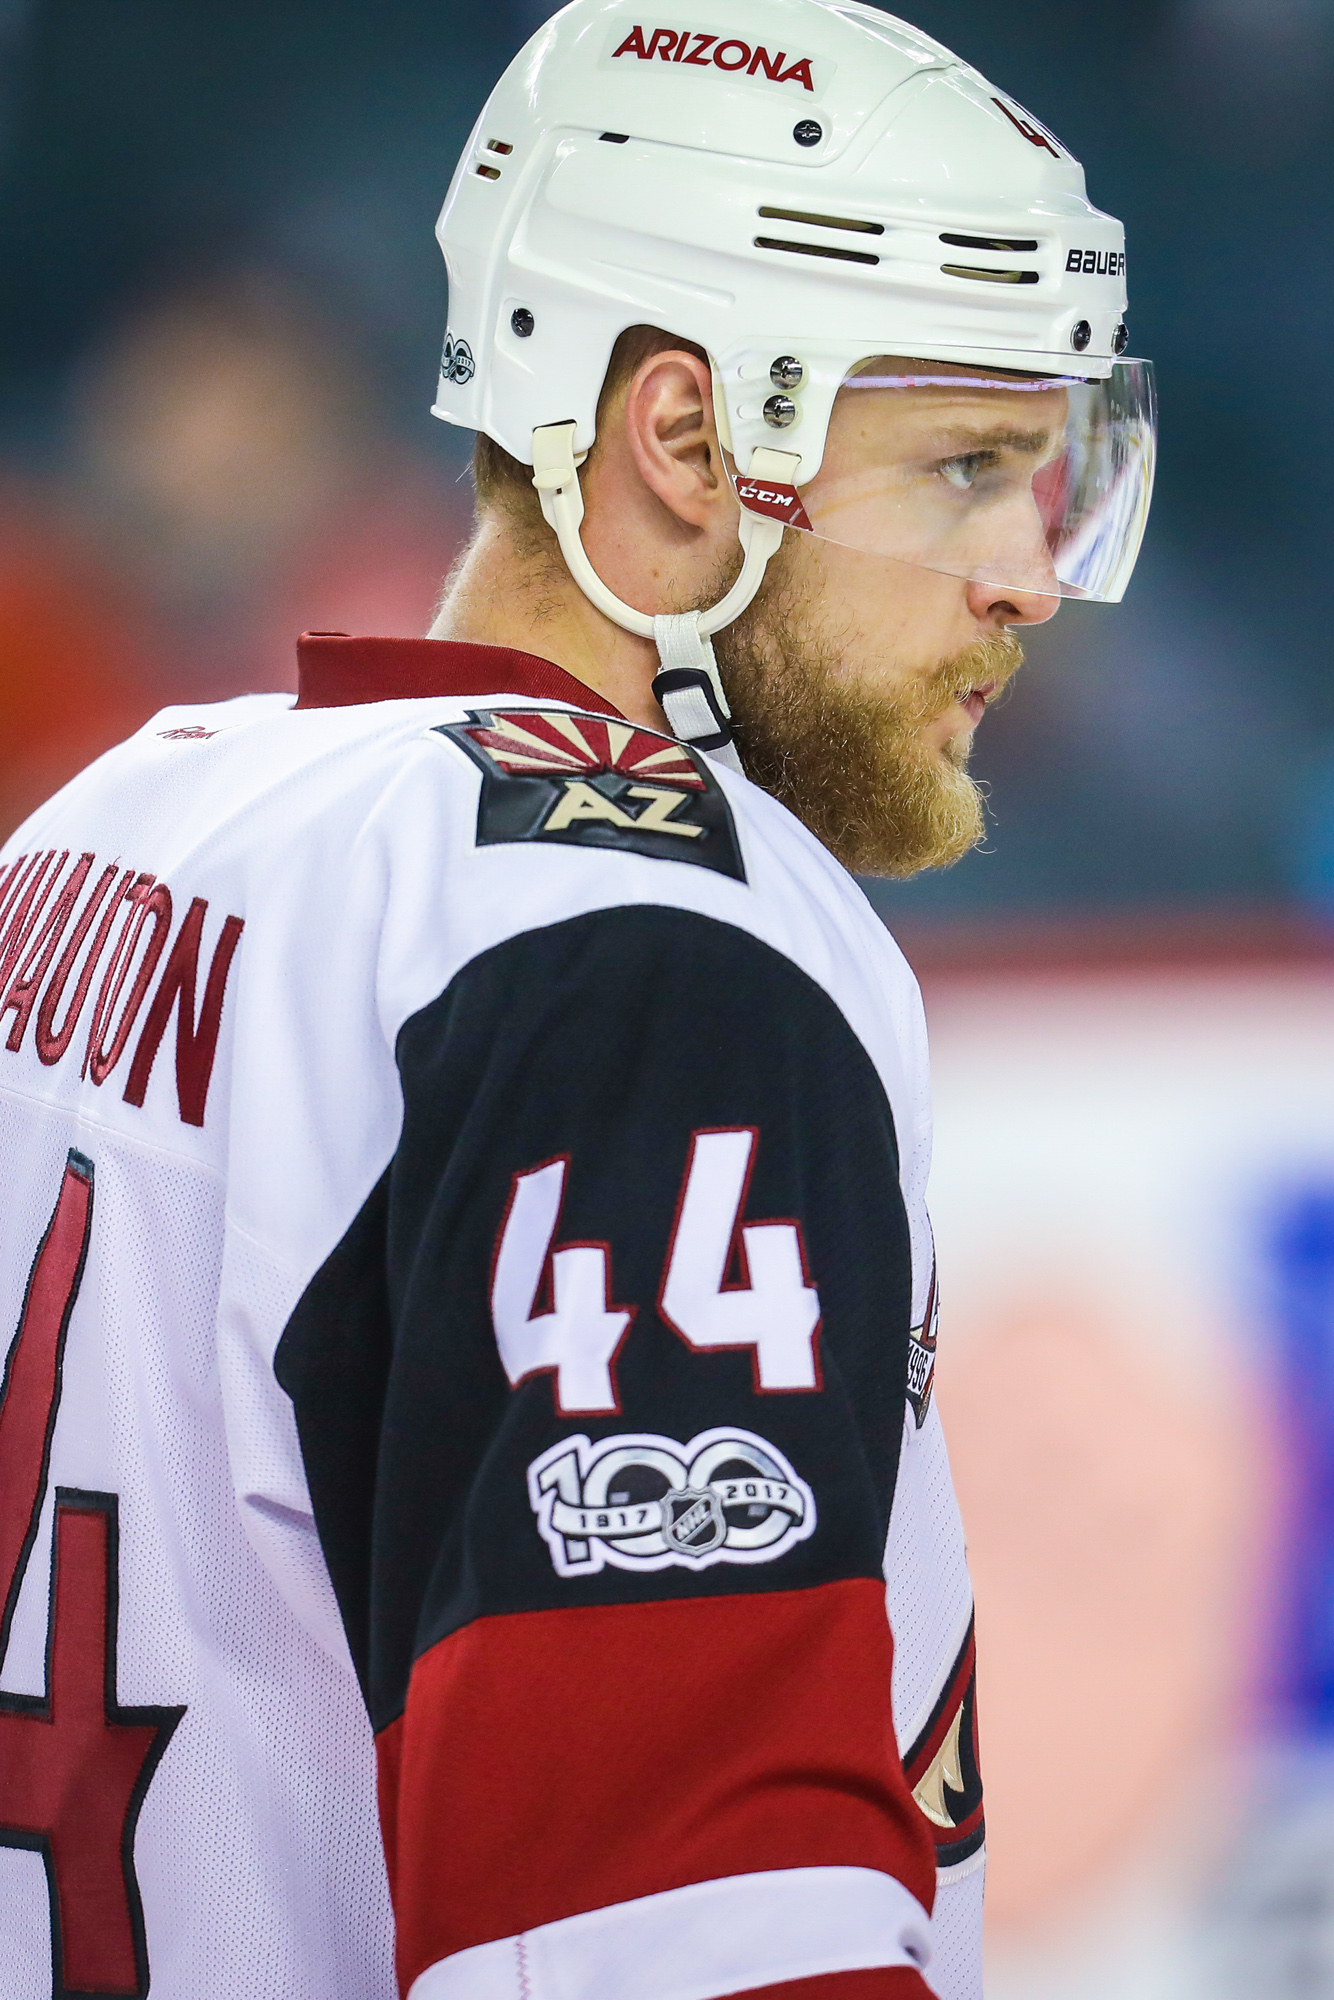 The 28-year old defenseman finished third on the Coyotes in scoring by  defensemen with 21 points 7e4a5bd75